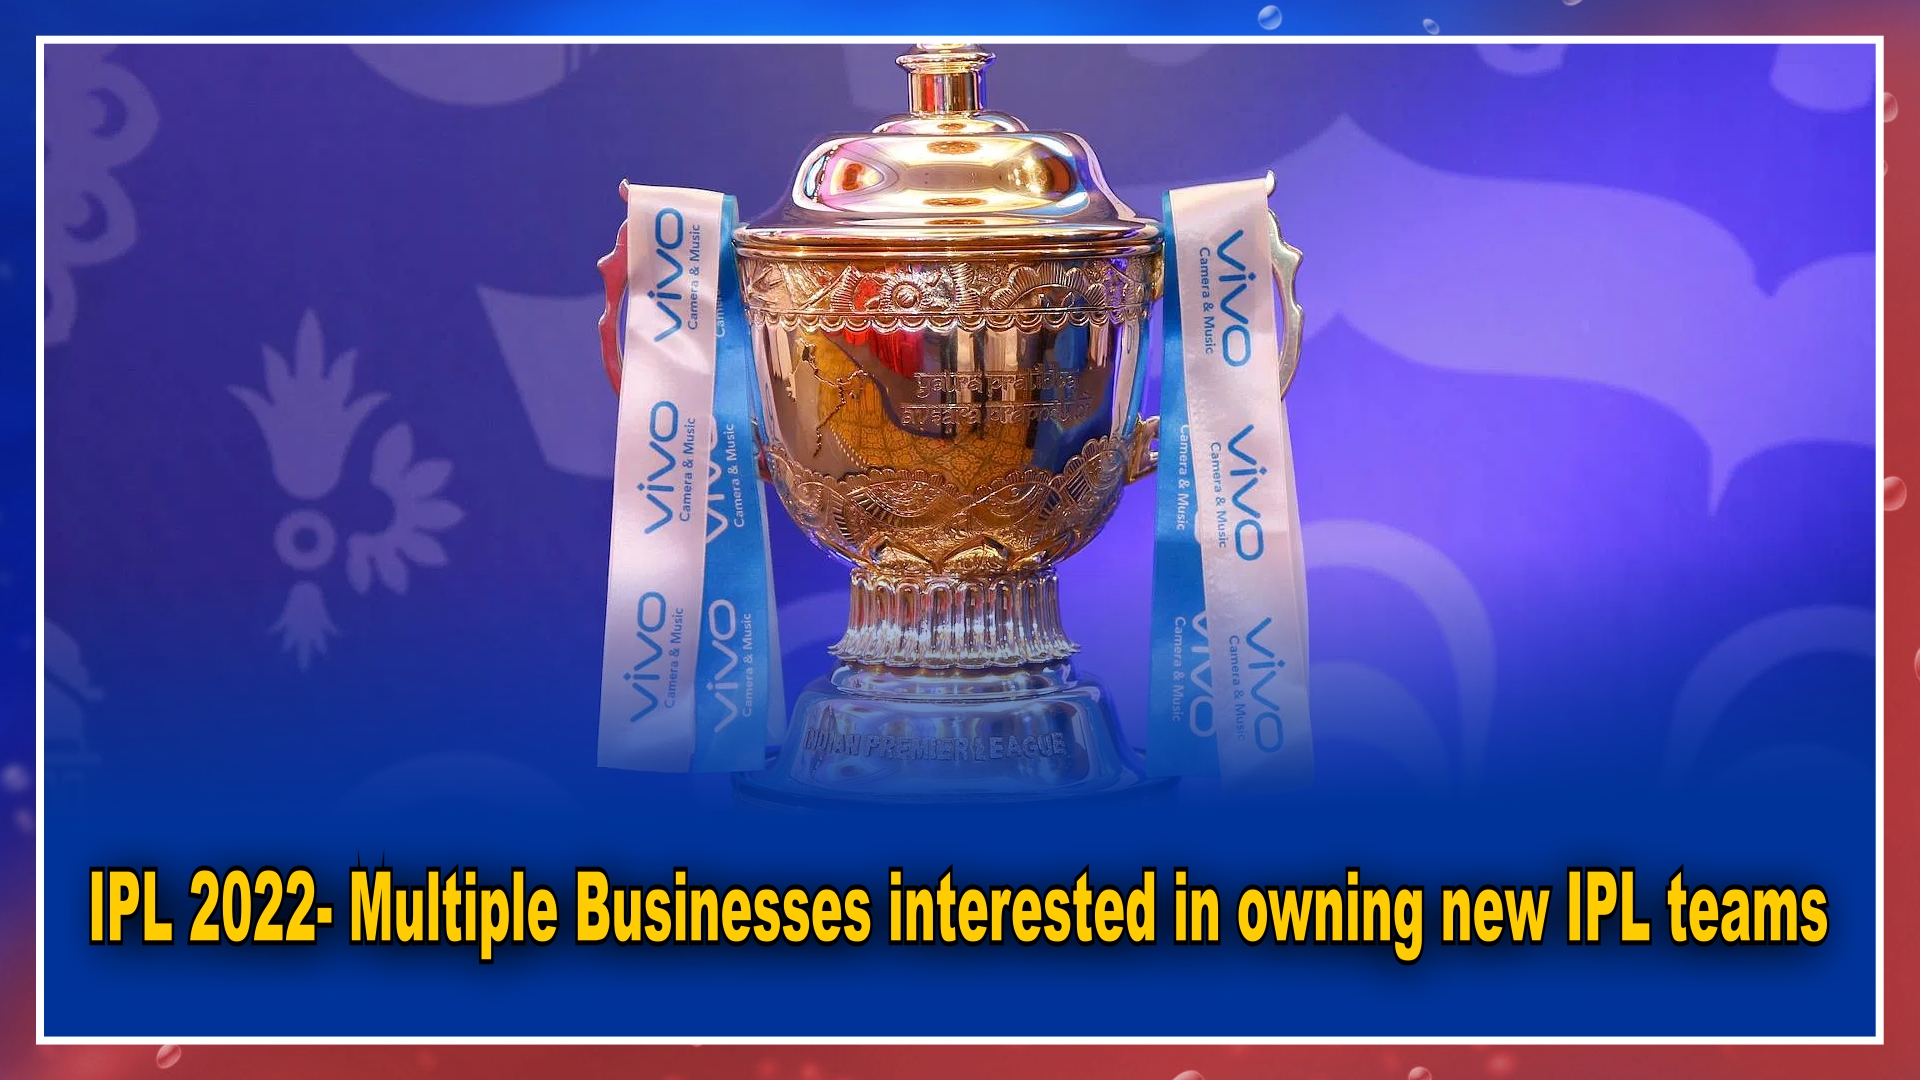 IPL 2022- Multiple Businesses interested in owning new IPL teams